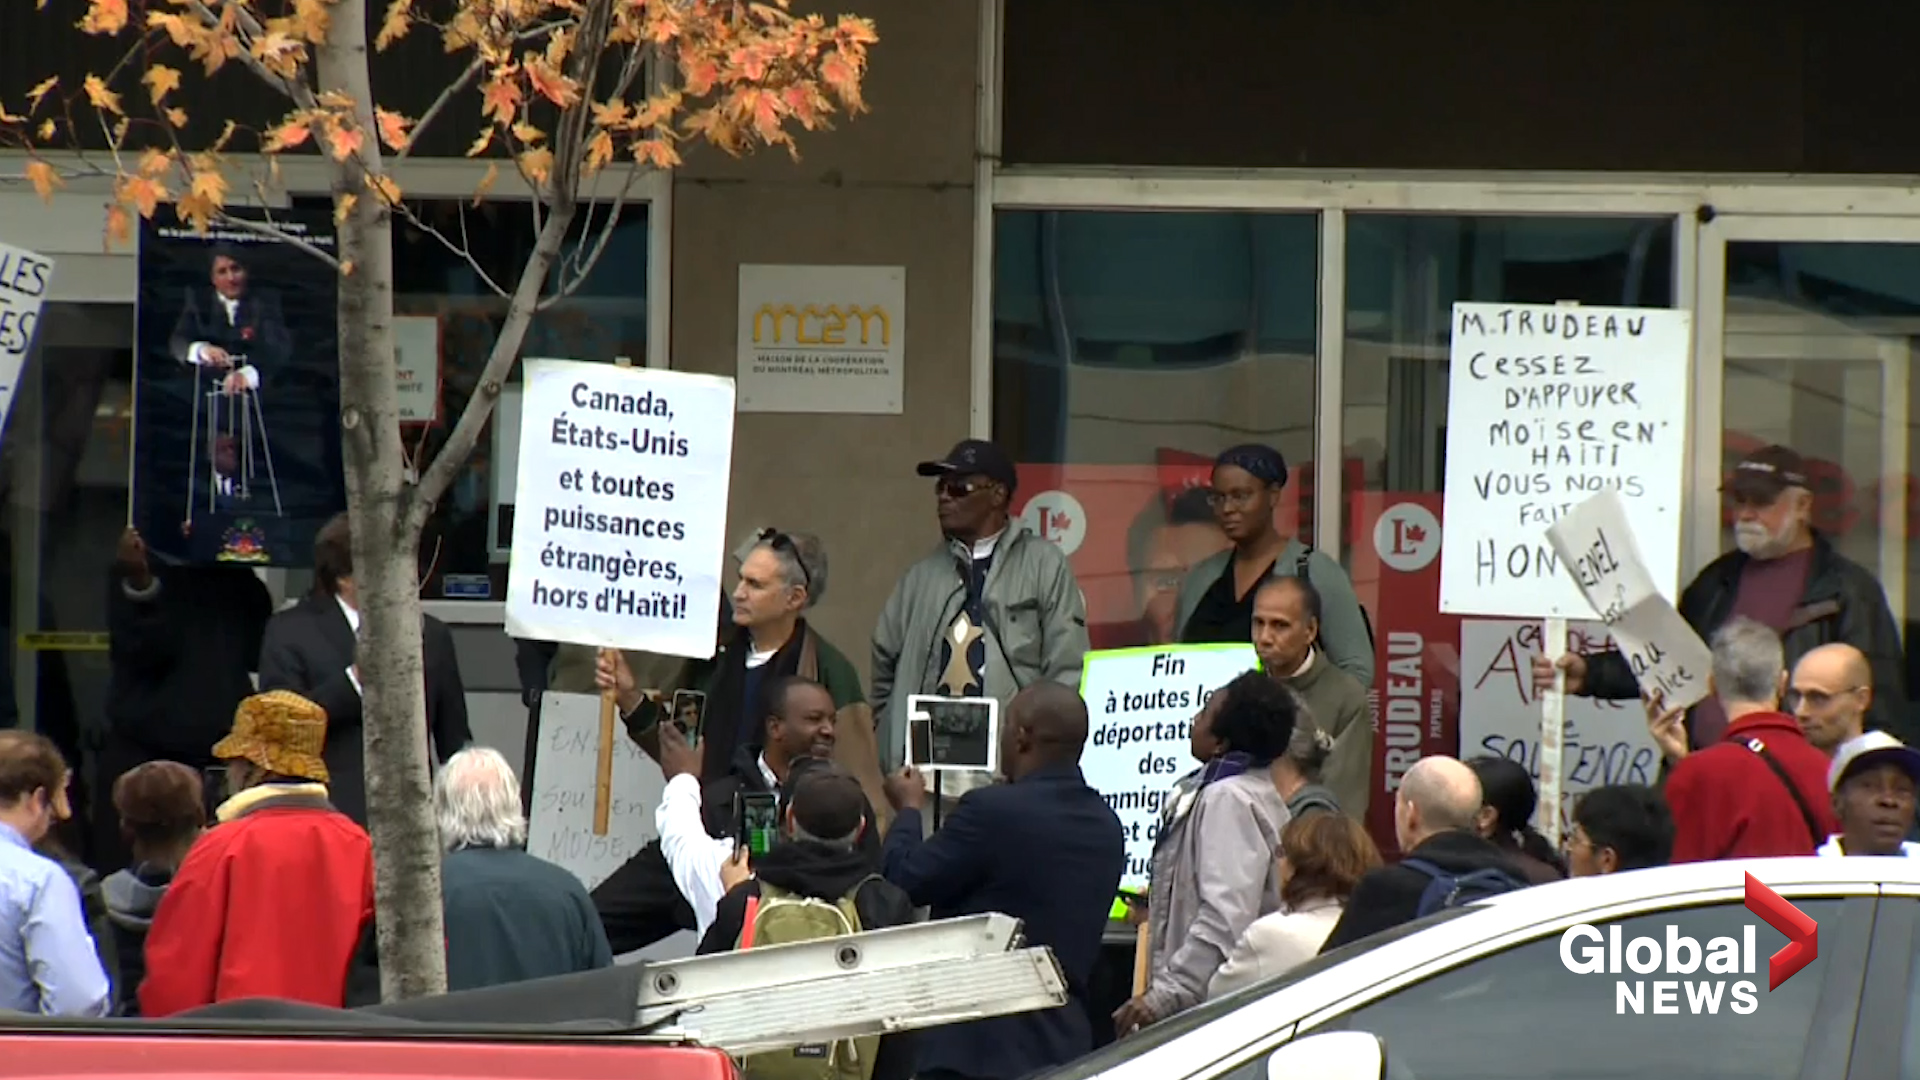 Montreal protesters demand that Canada take action against Haitian Government